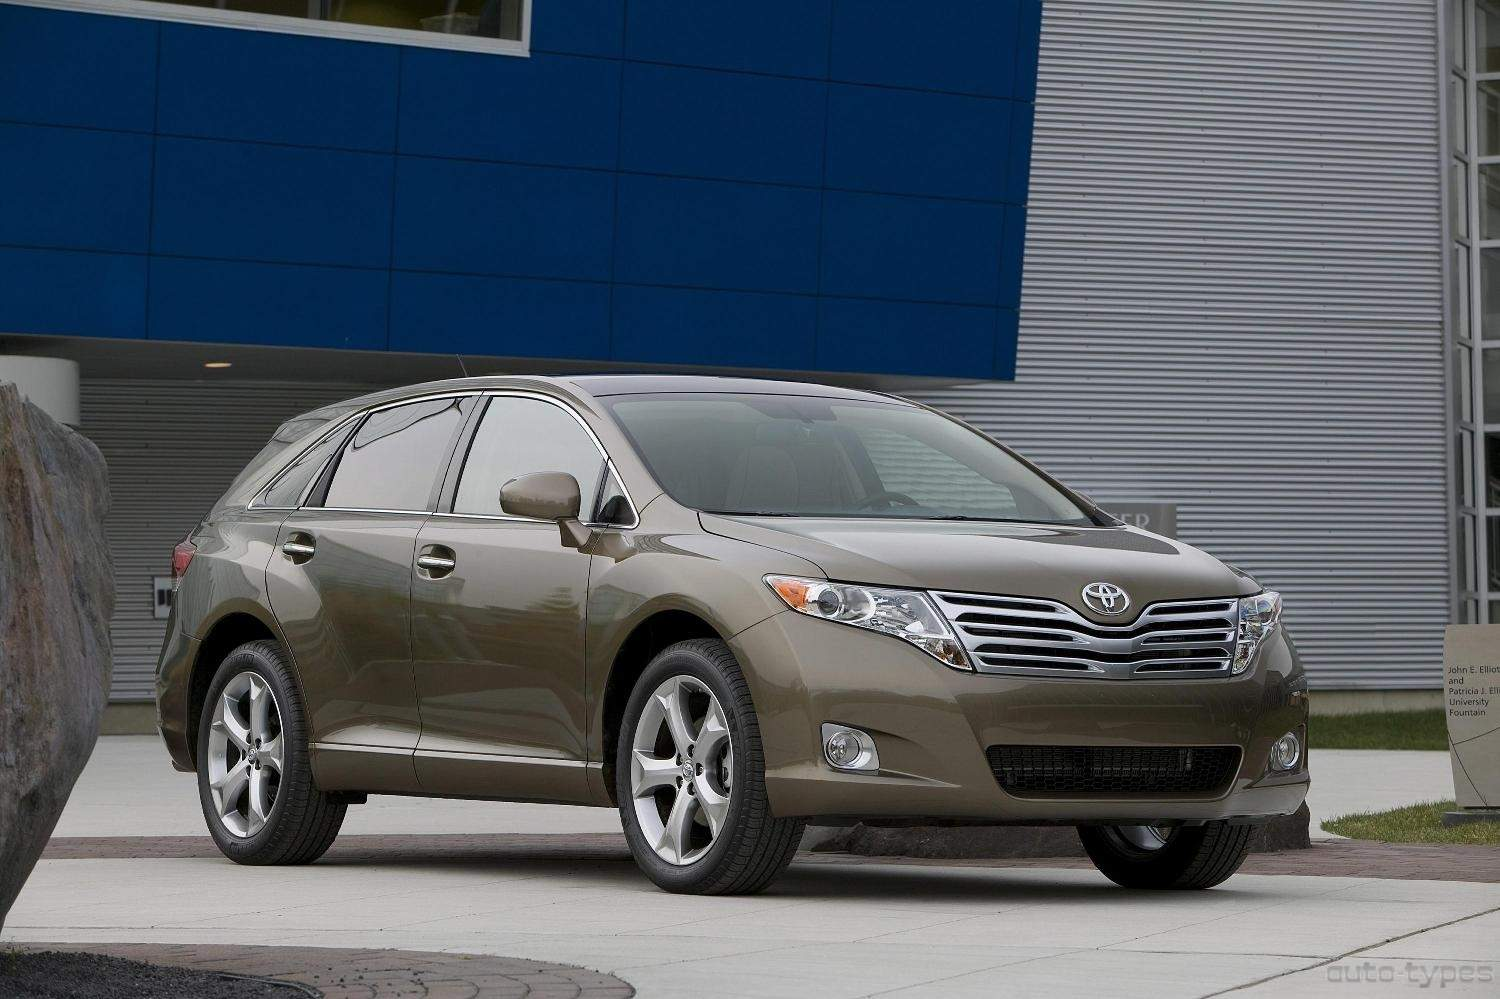 2013 toyota venza new car modification review new car wallpaper specification car car